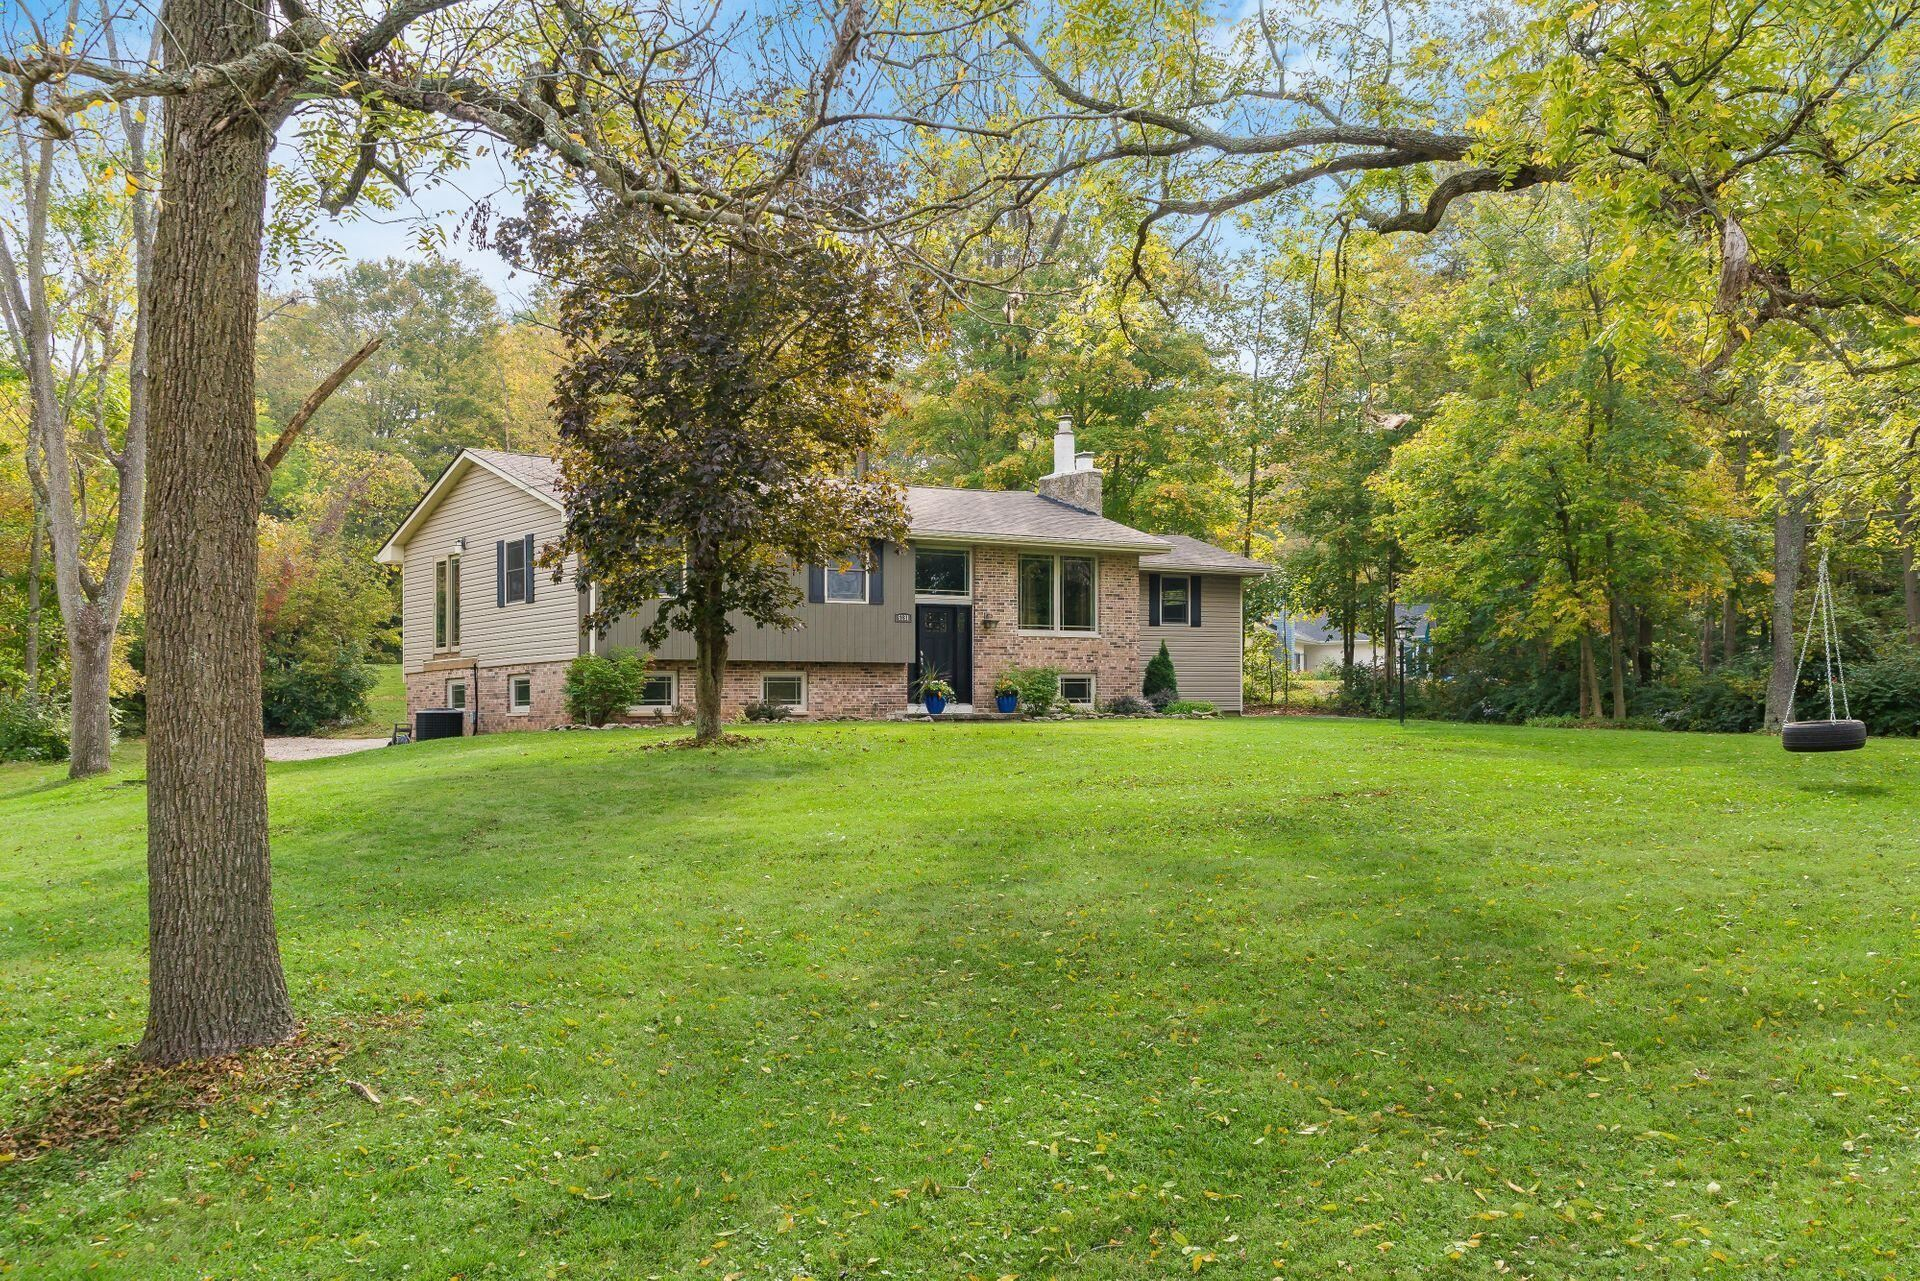 Photo of 6181 Riverside Drive, Powell, OH 43065 (MLS # 221039874)